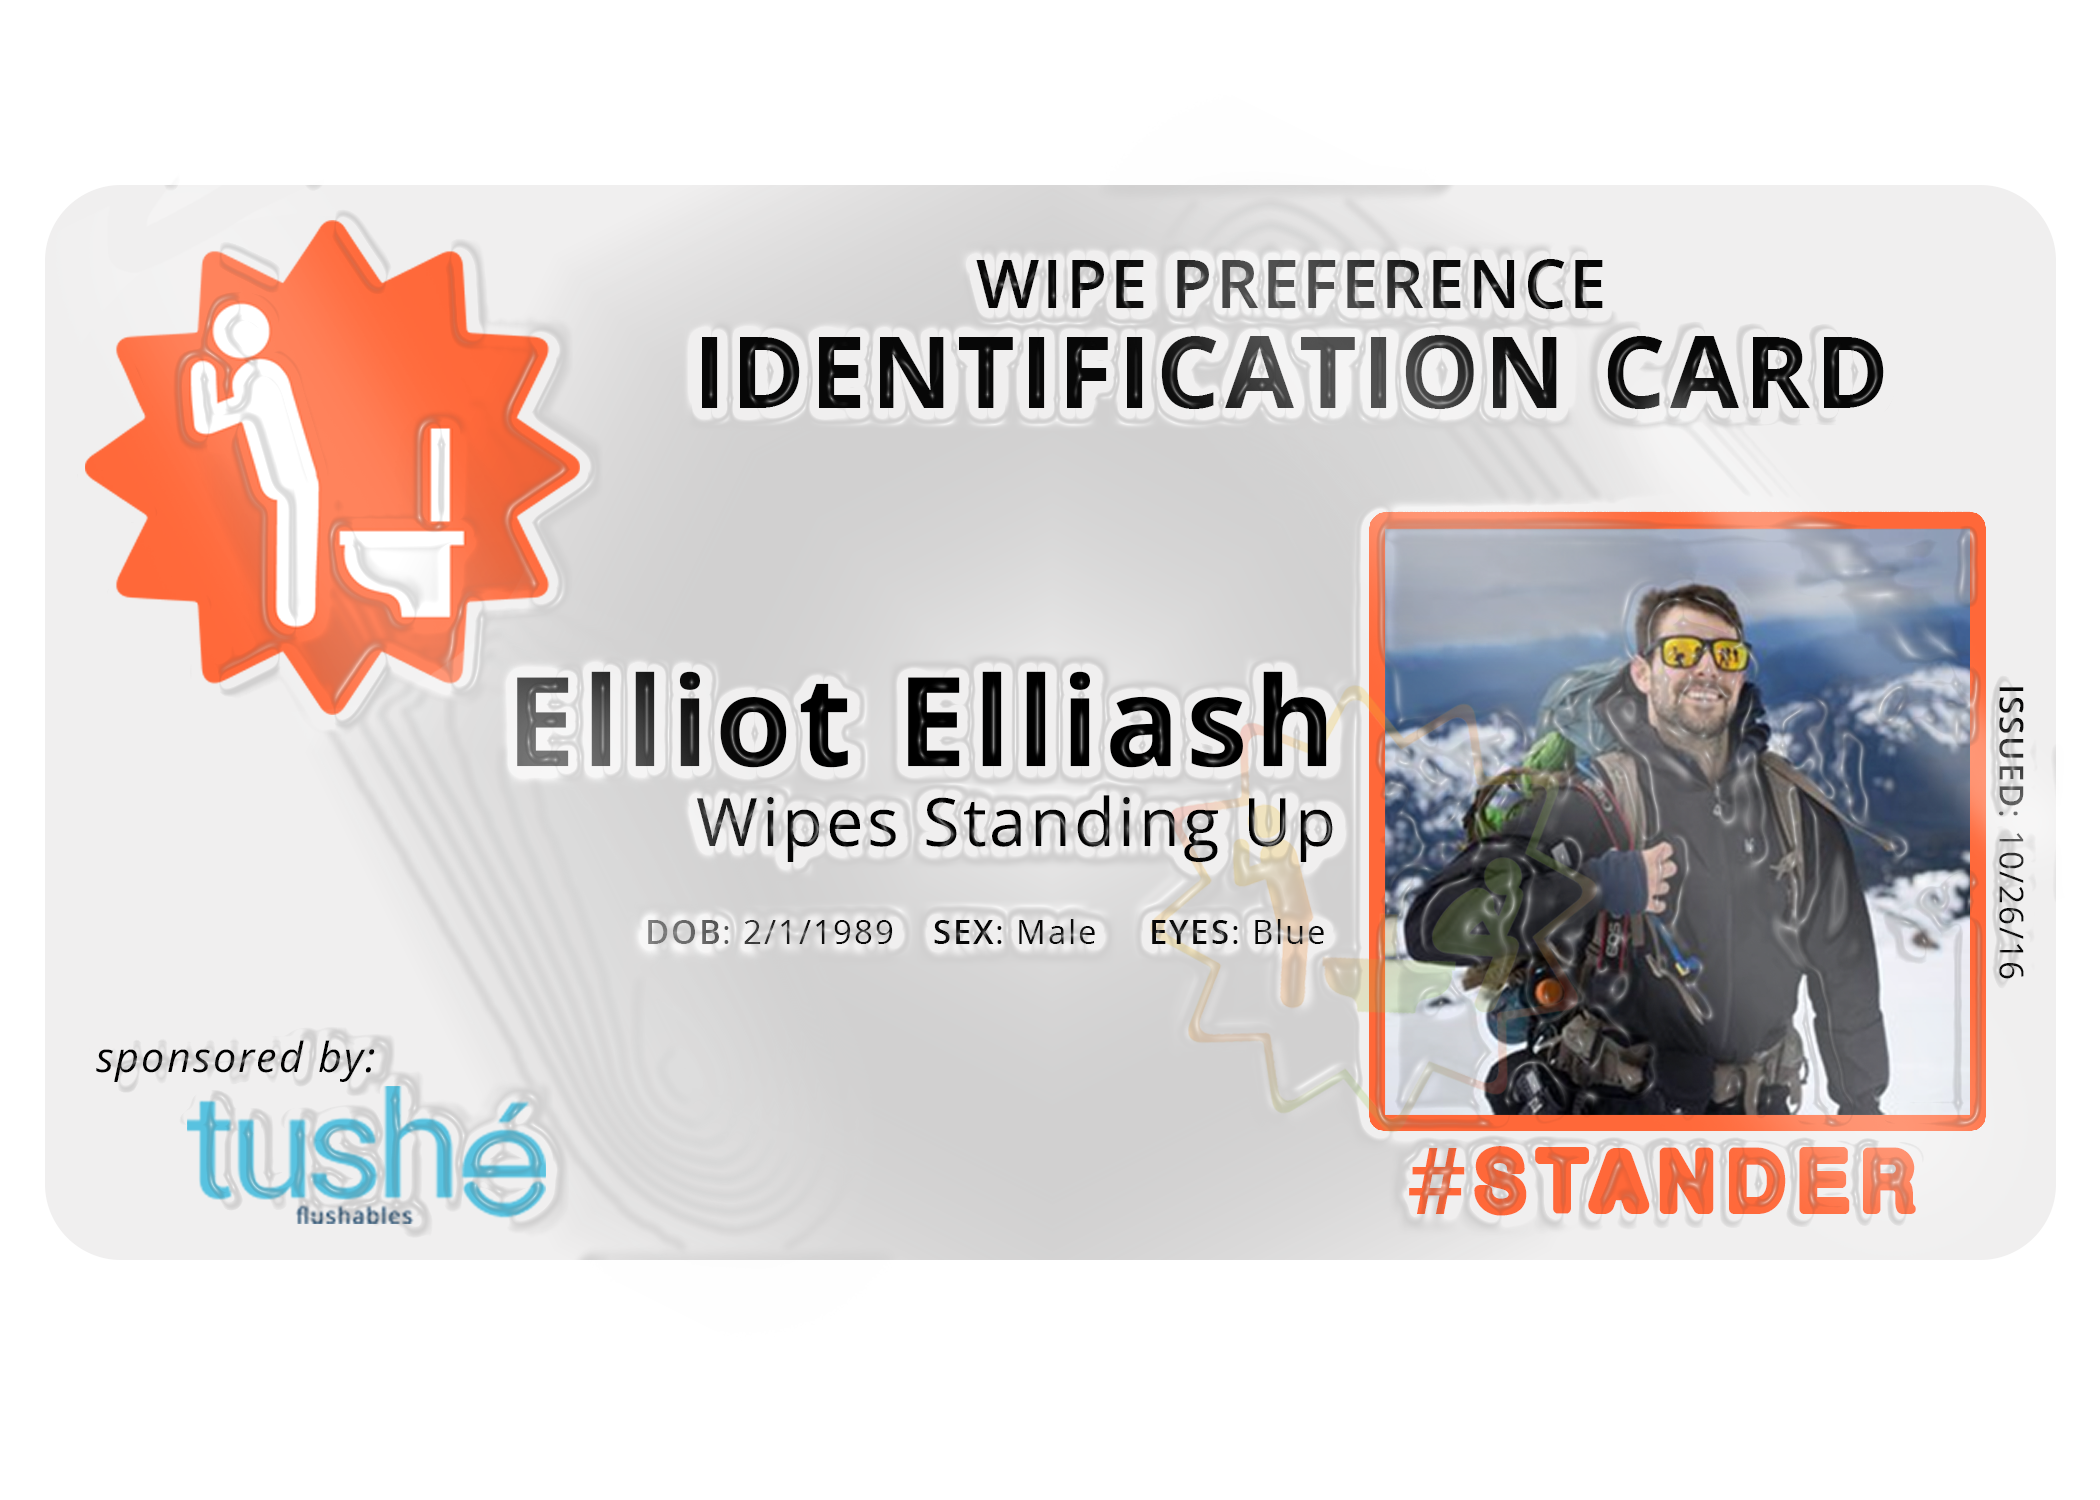 Free Stuff |  ID Card  + An ID card to declare your wiping style.  + Shareable social object to extend campaign reach.